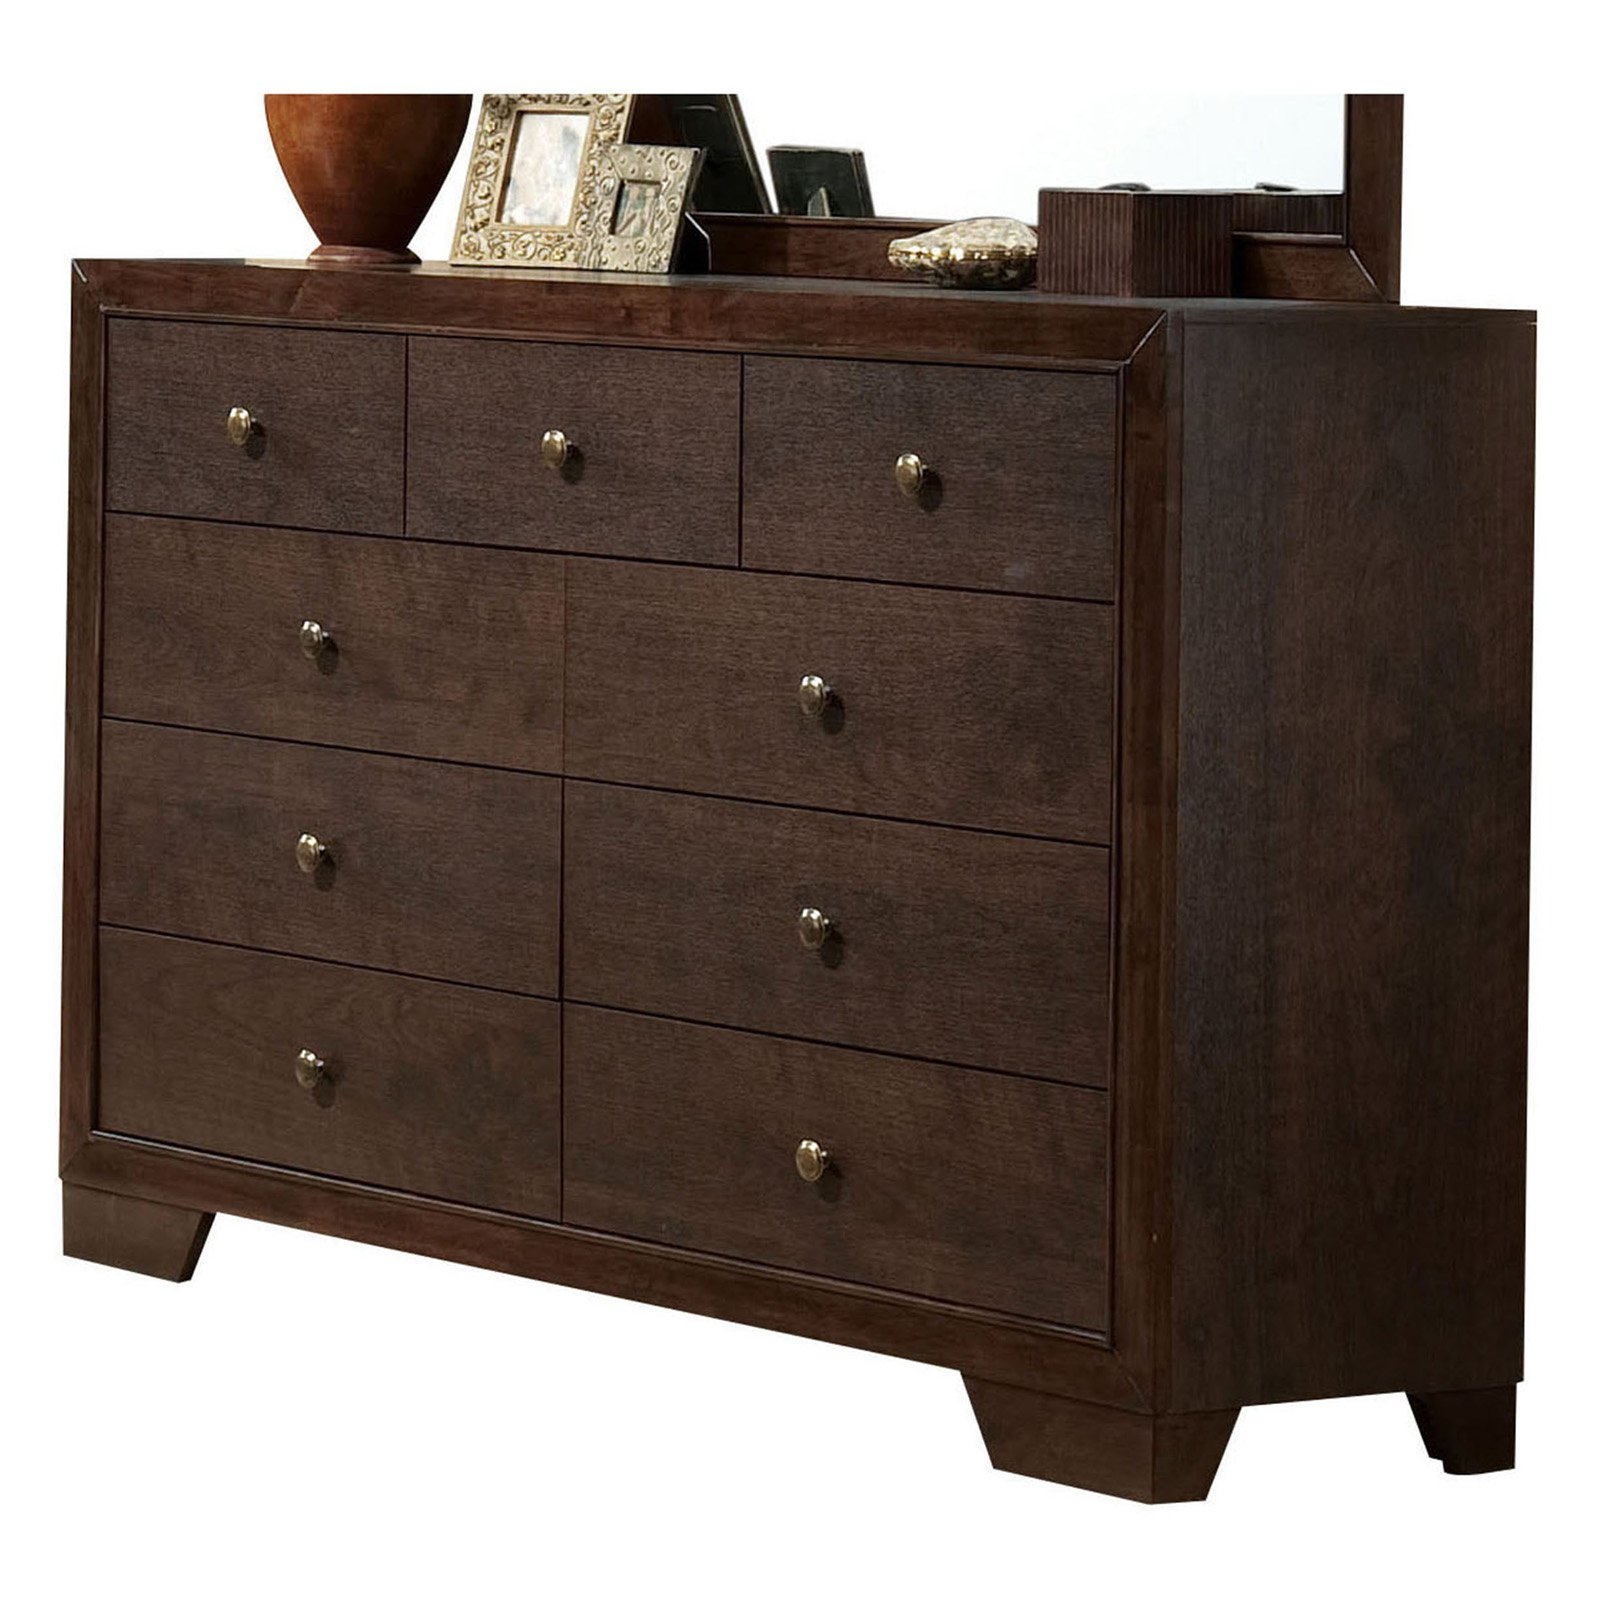 Acme Furniture Madison Espresso Dresser with Nine Drawers